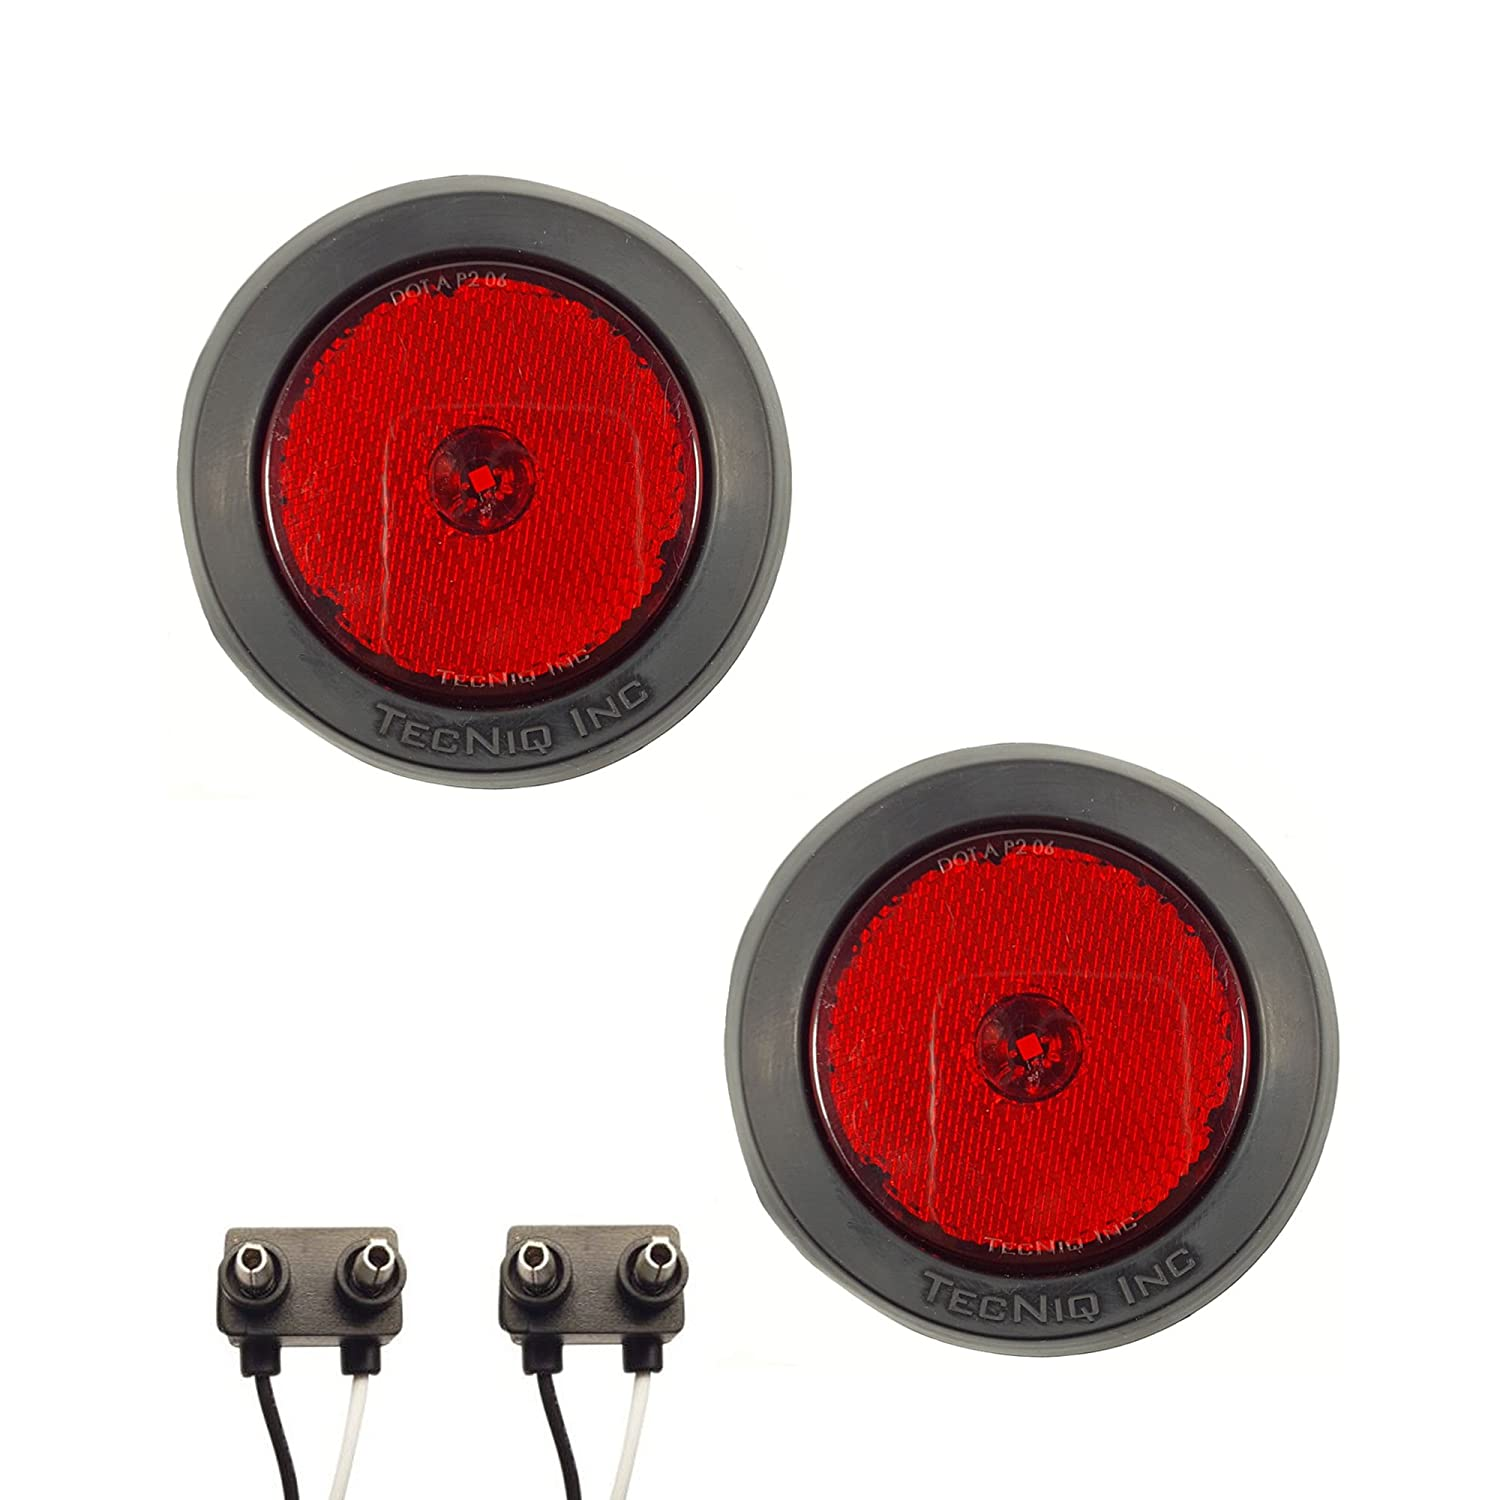 RVs Pair of LED 2.5 Round Red Clearance//Side Marker Lights with Grommets and 2 Pole Wire Connectors for Trucks Trailers